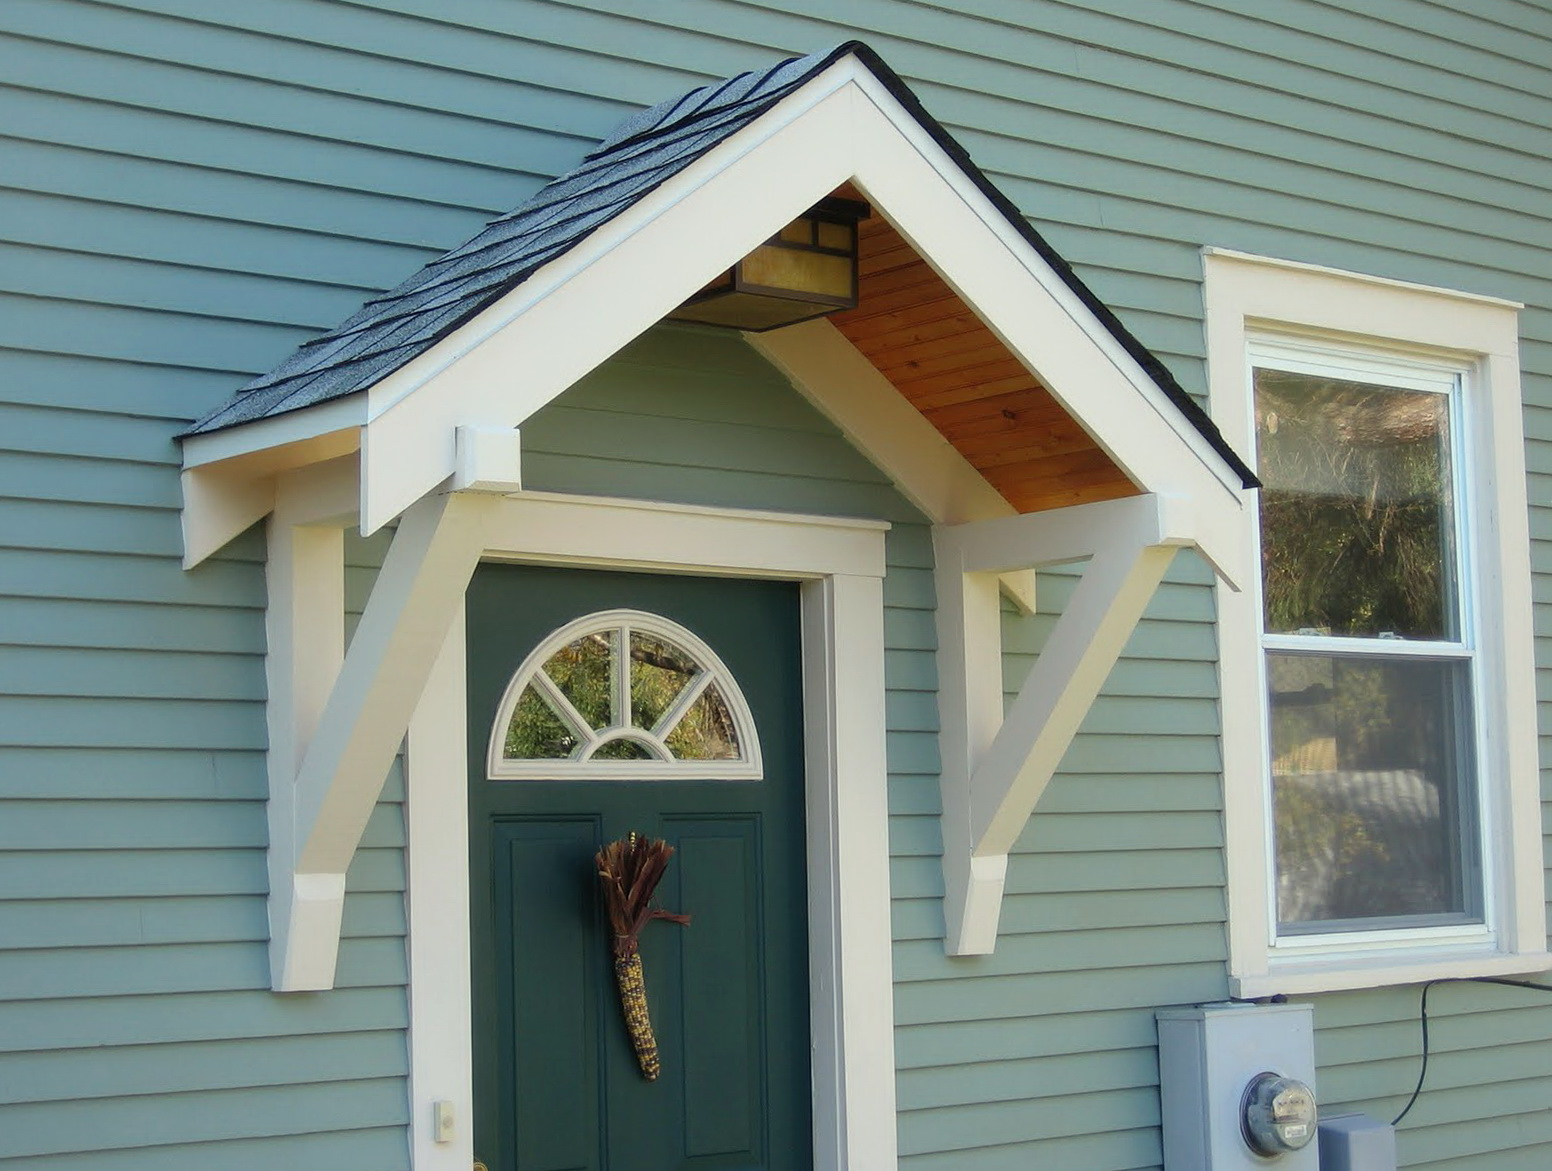 Roof Design Ideas: Front Door Porch Roof Designs